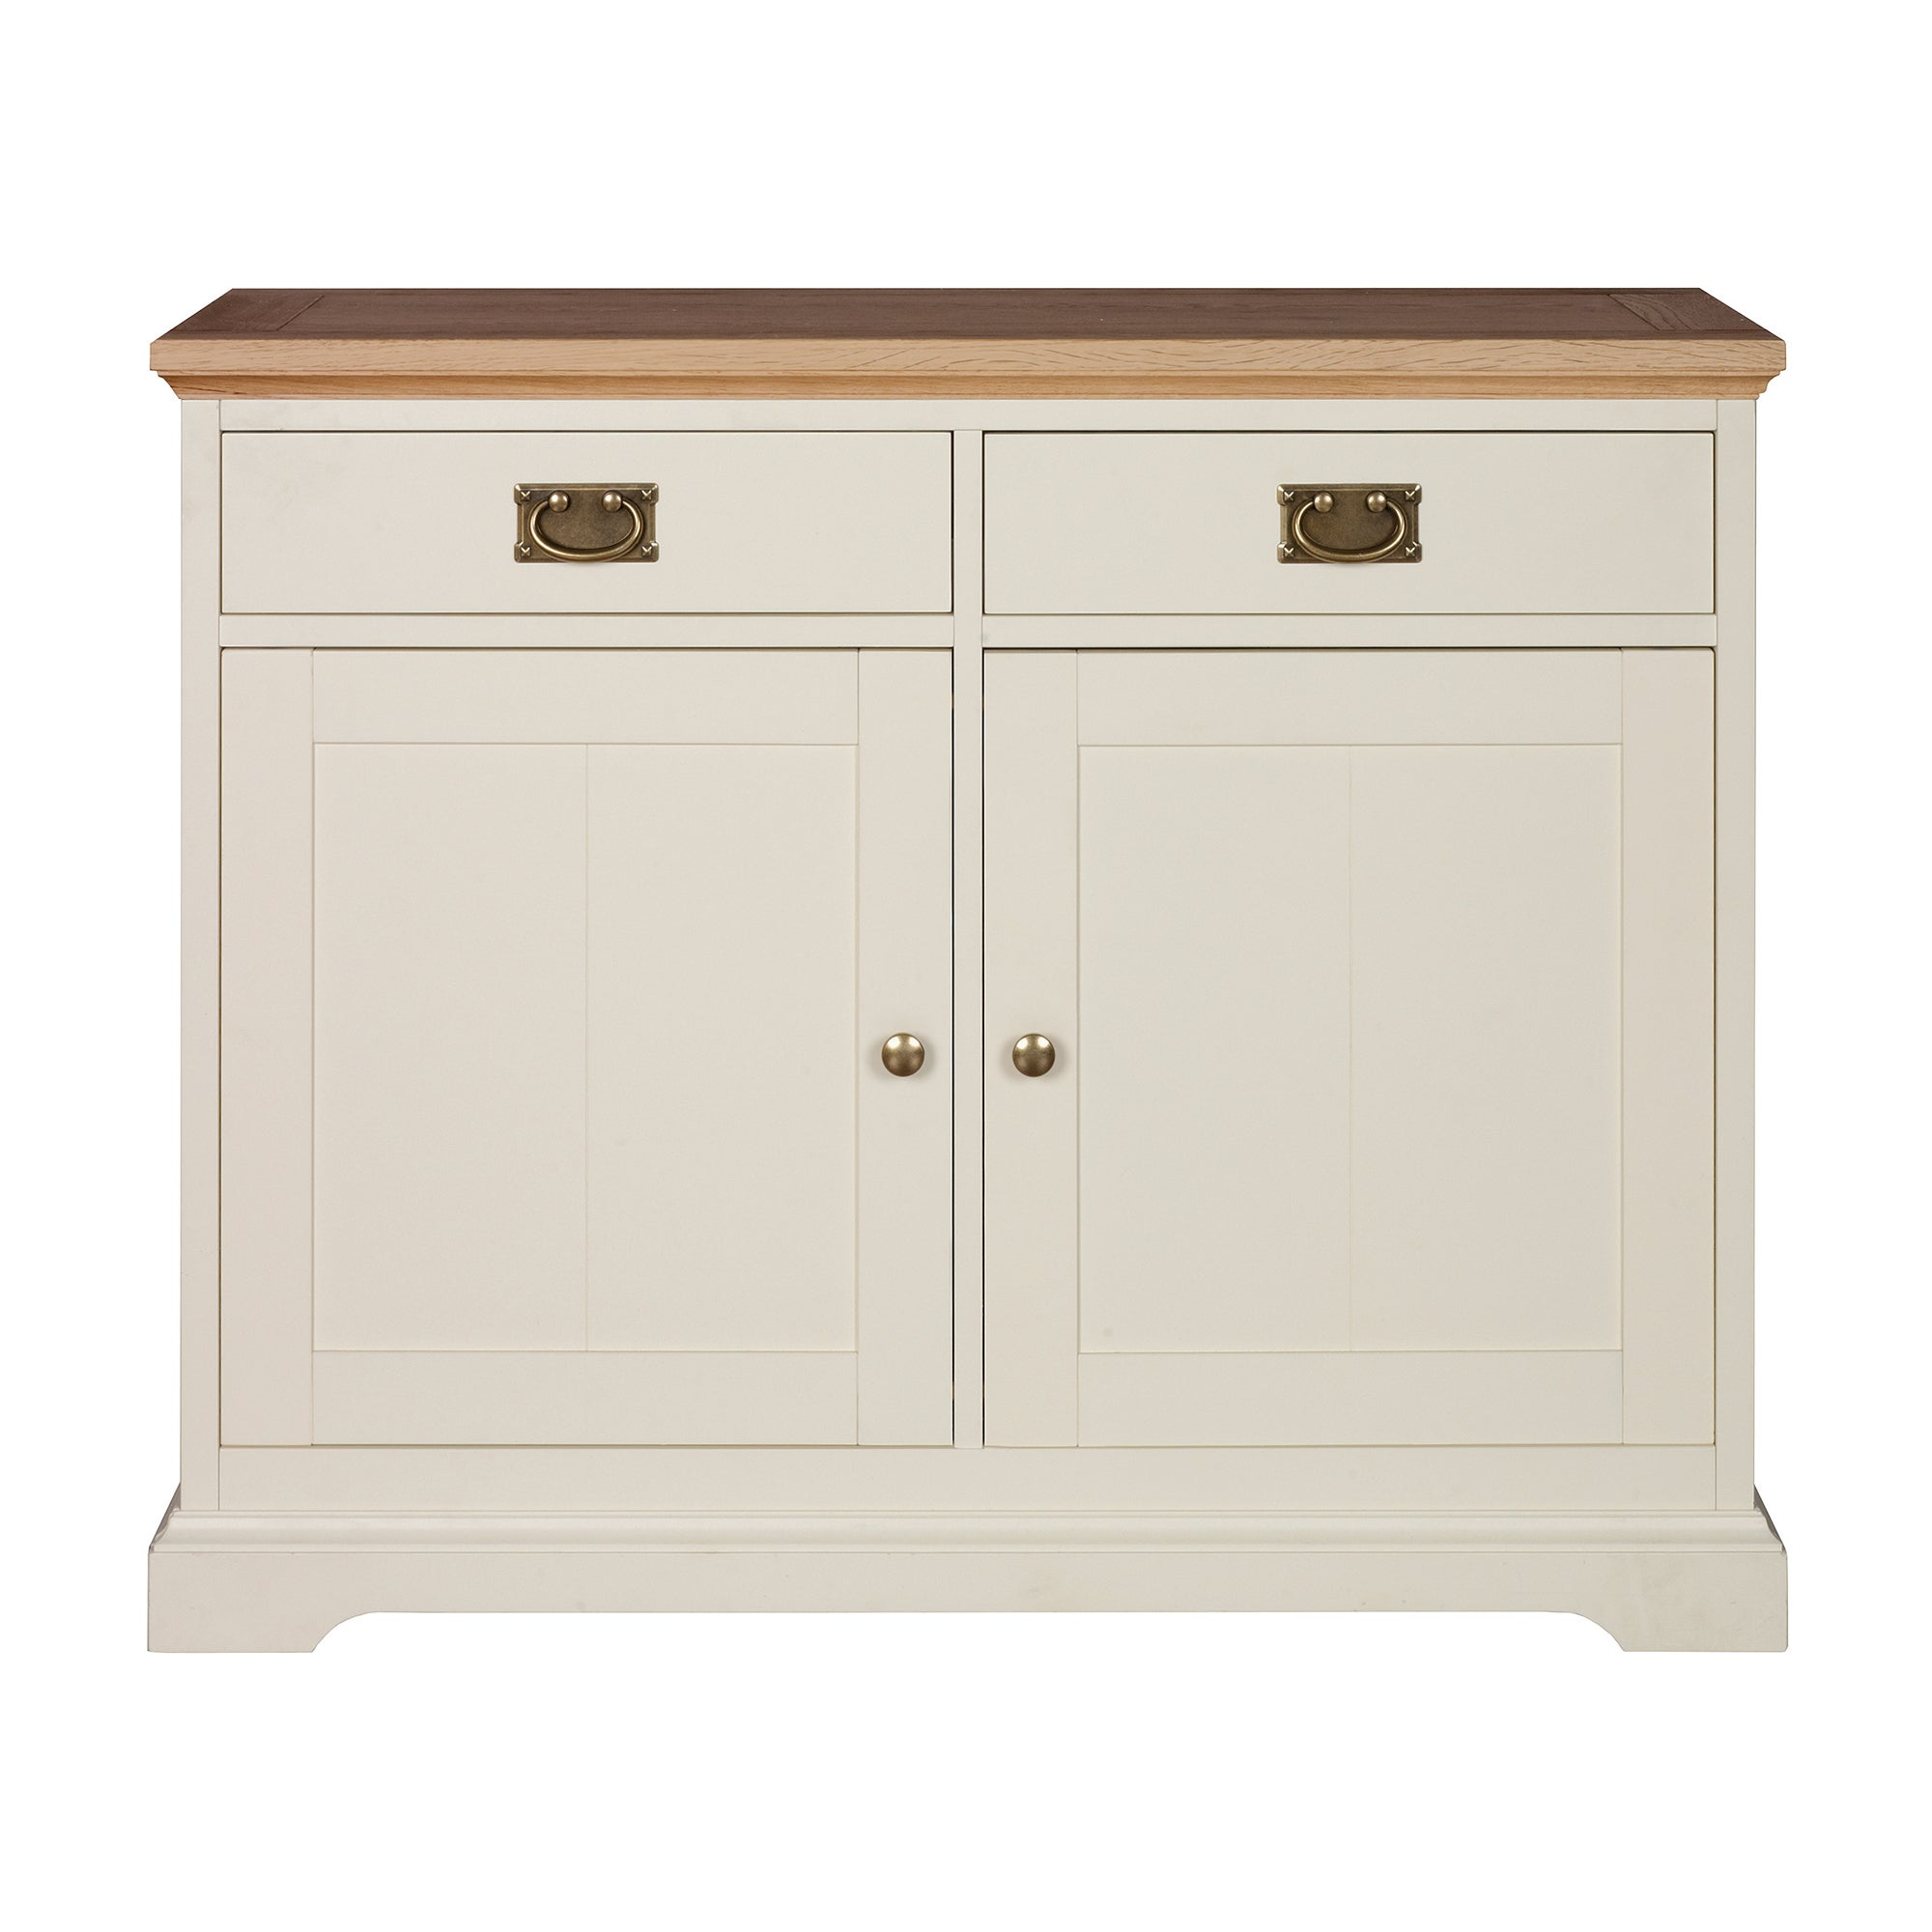 Penzance Oak Two Tone Narrow Sideboard